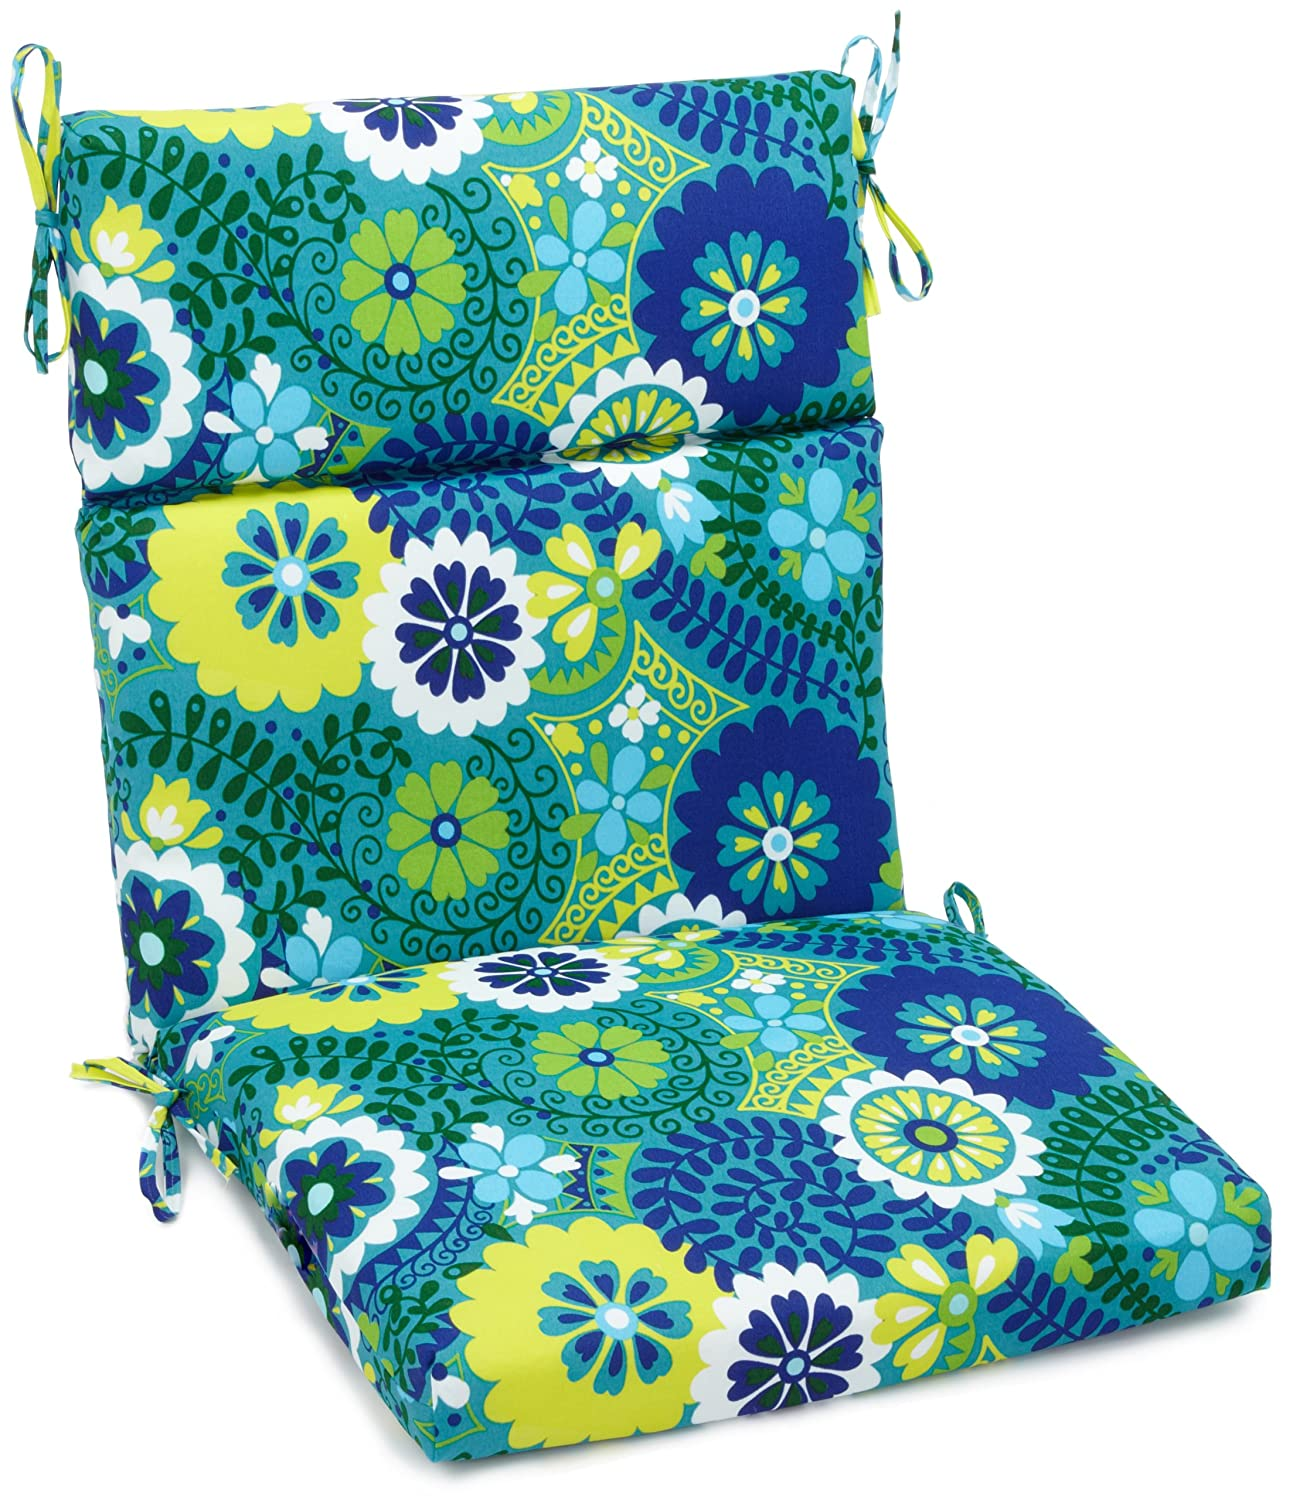 Blazing Needles Outdoor Spun Poly 22-Inch by 45-Inch by 3-1 2-Inch 3-Section Chair Cushion, Luxury Azure